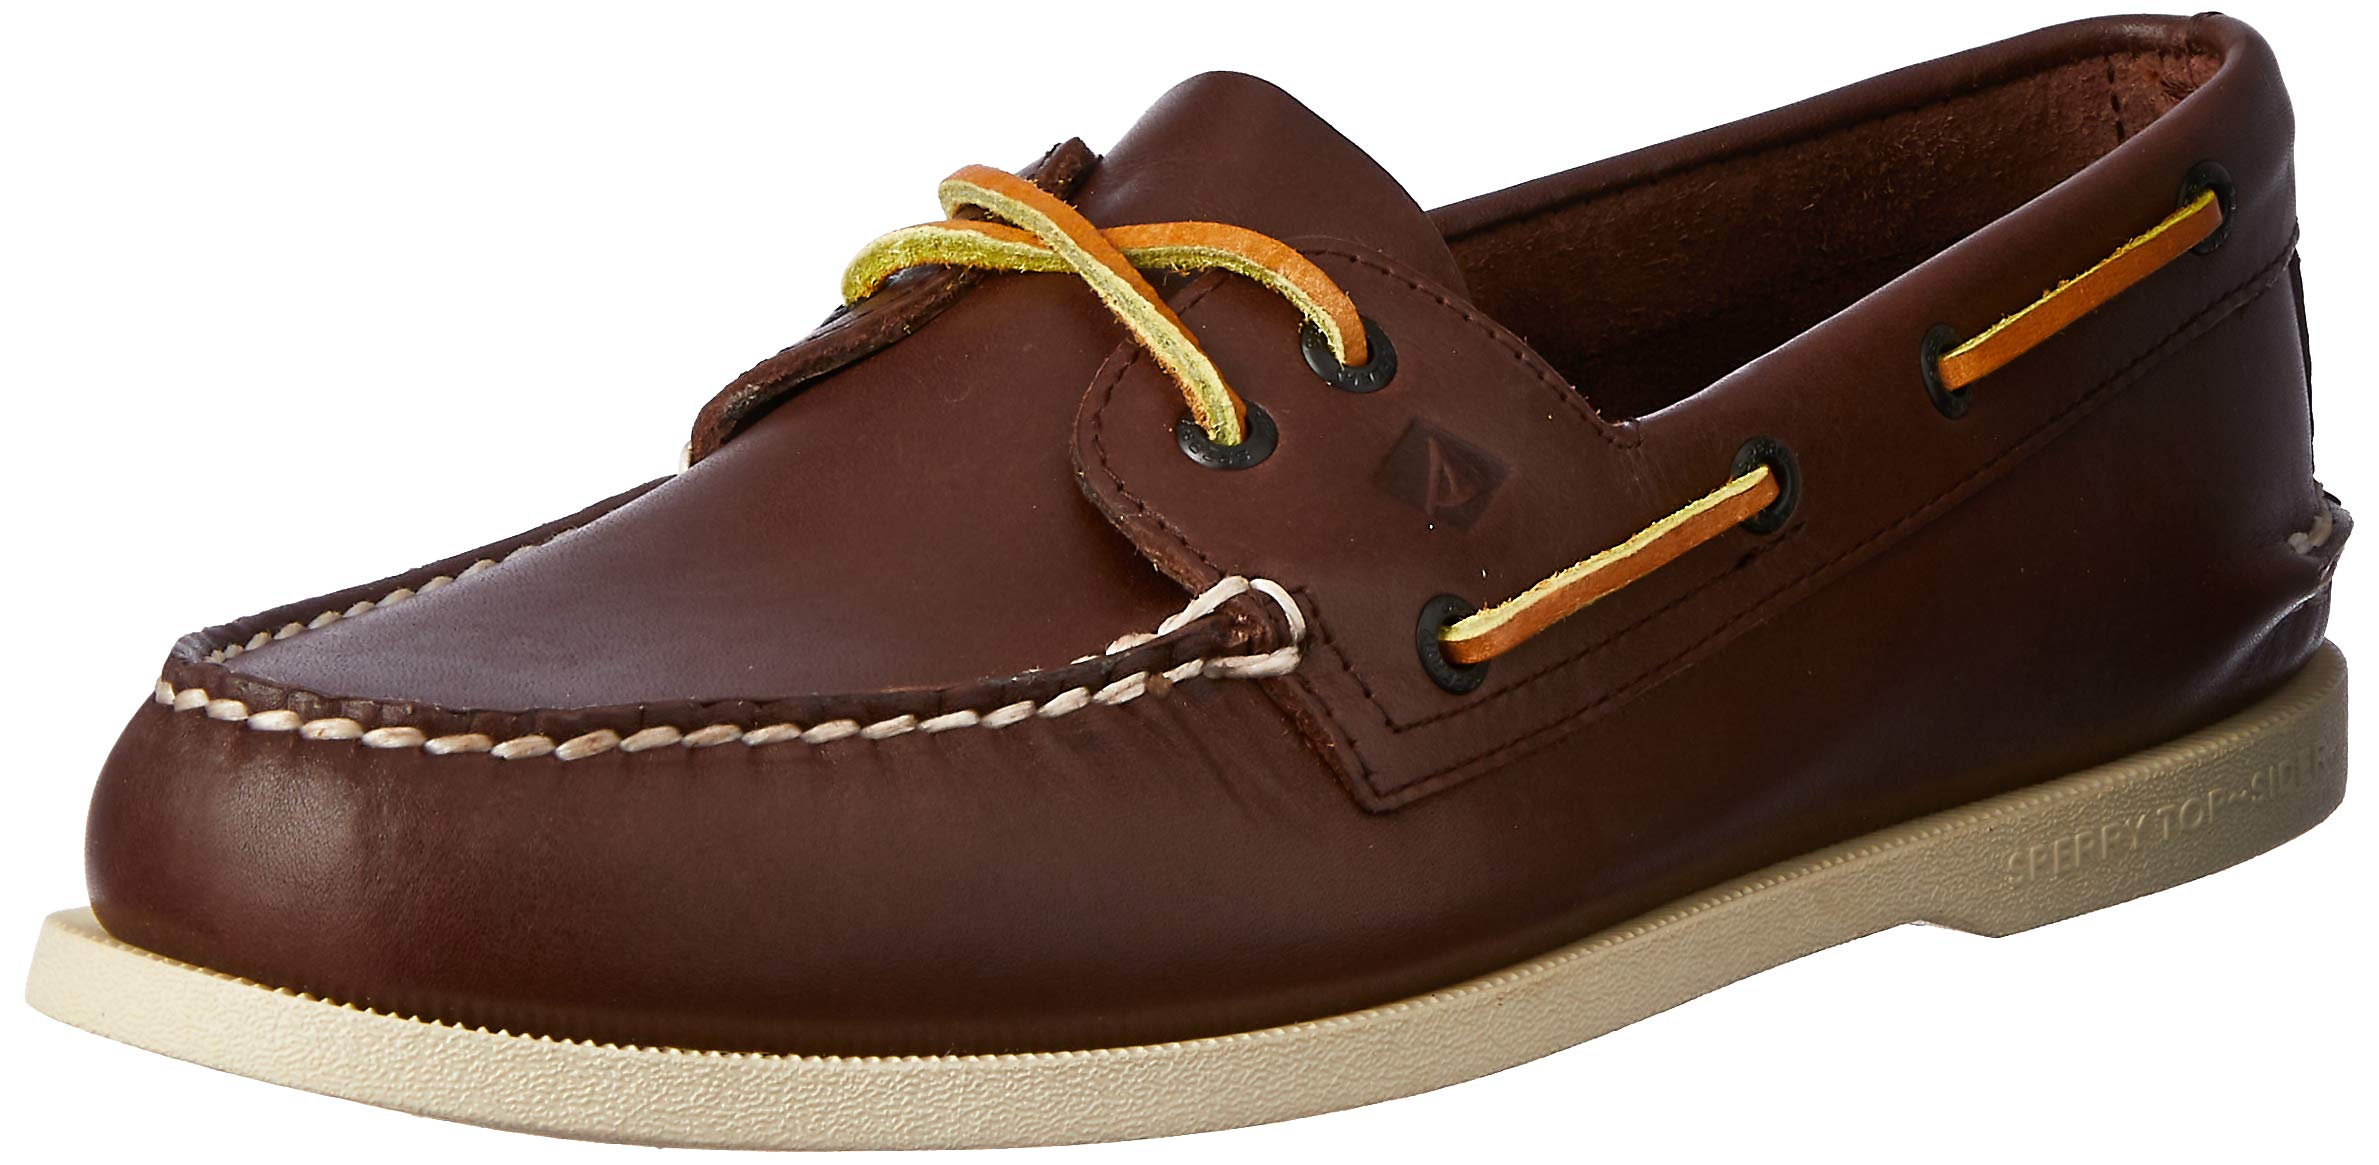 Sperry Men's A/O 2 Eye Boat Shoe,Brown,11.5 M US